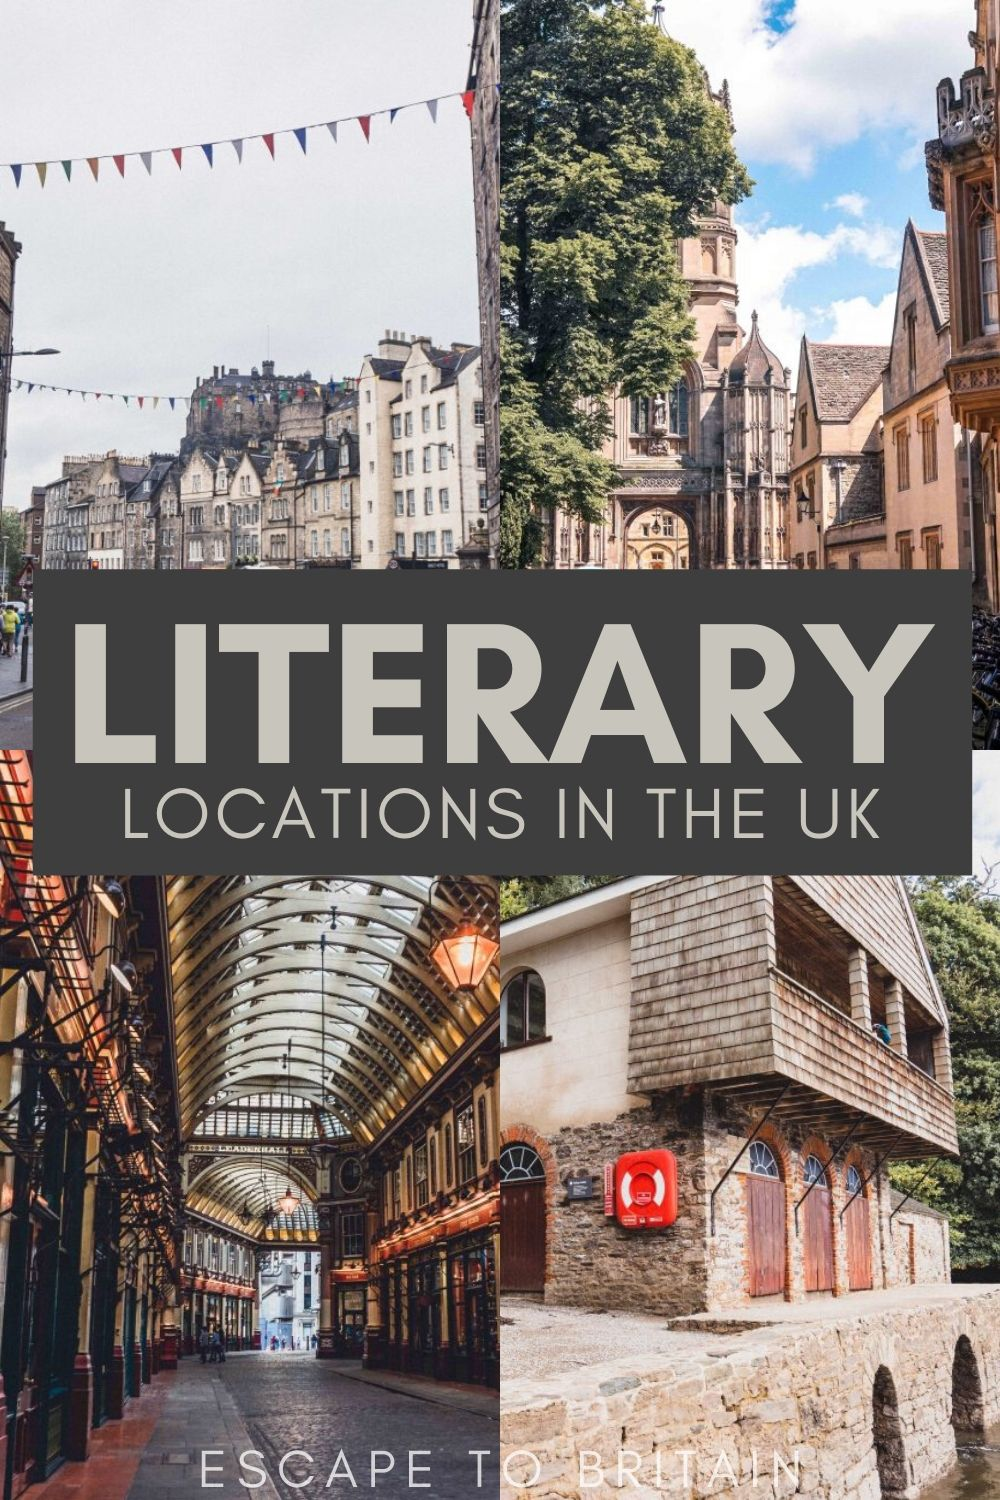 Best places to visit in England Scotland Northern Ireland and Wales/ Literary Locations in the UK that Bookworms Will Love